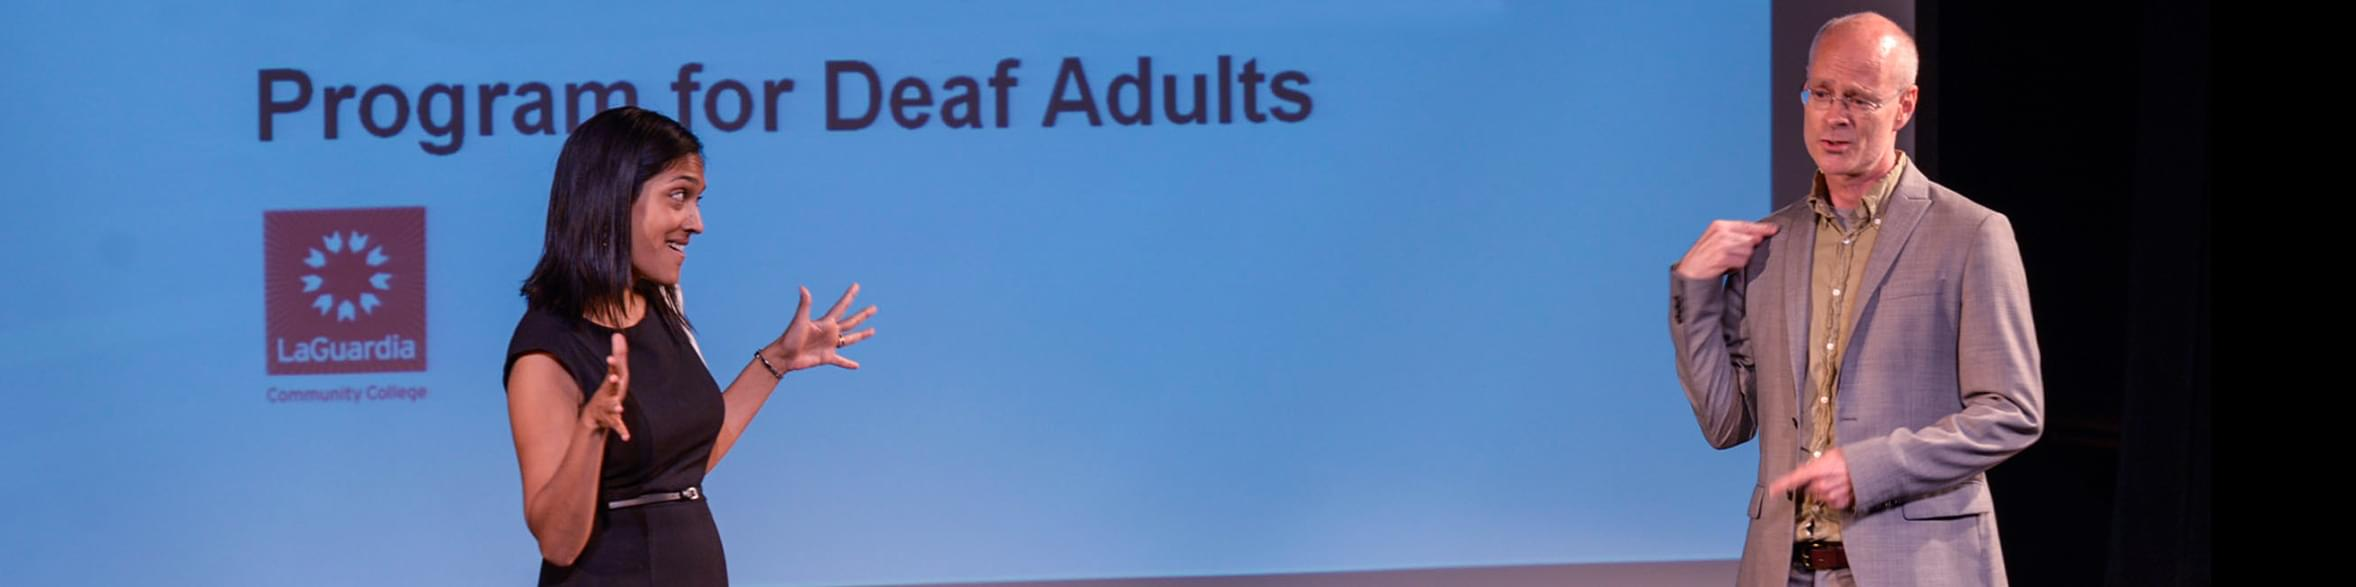 Program for Deaf Adults